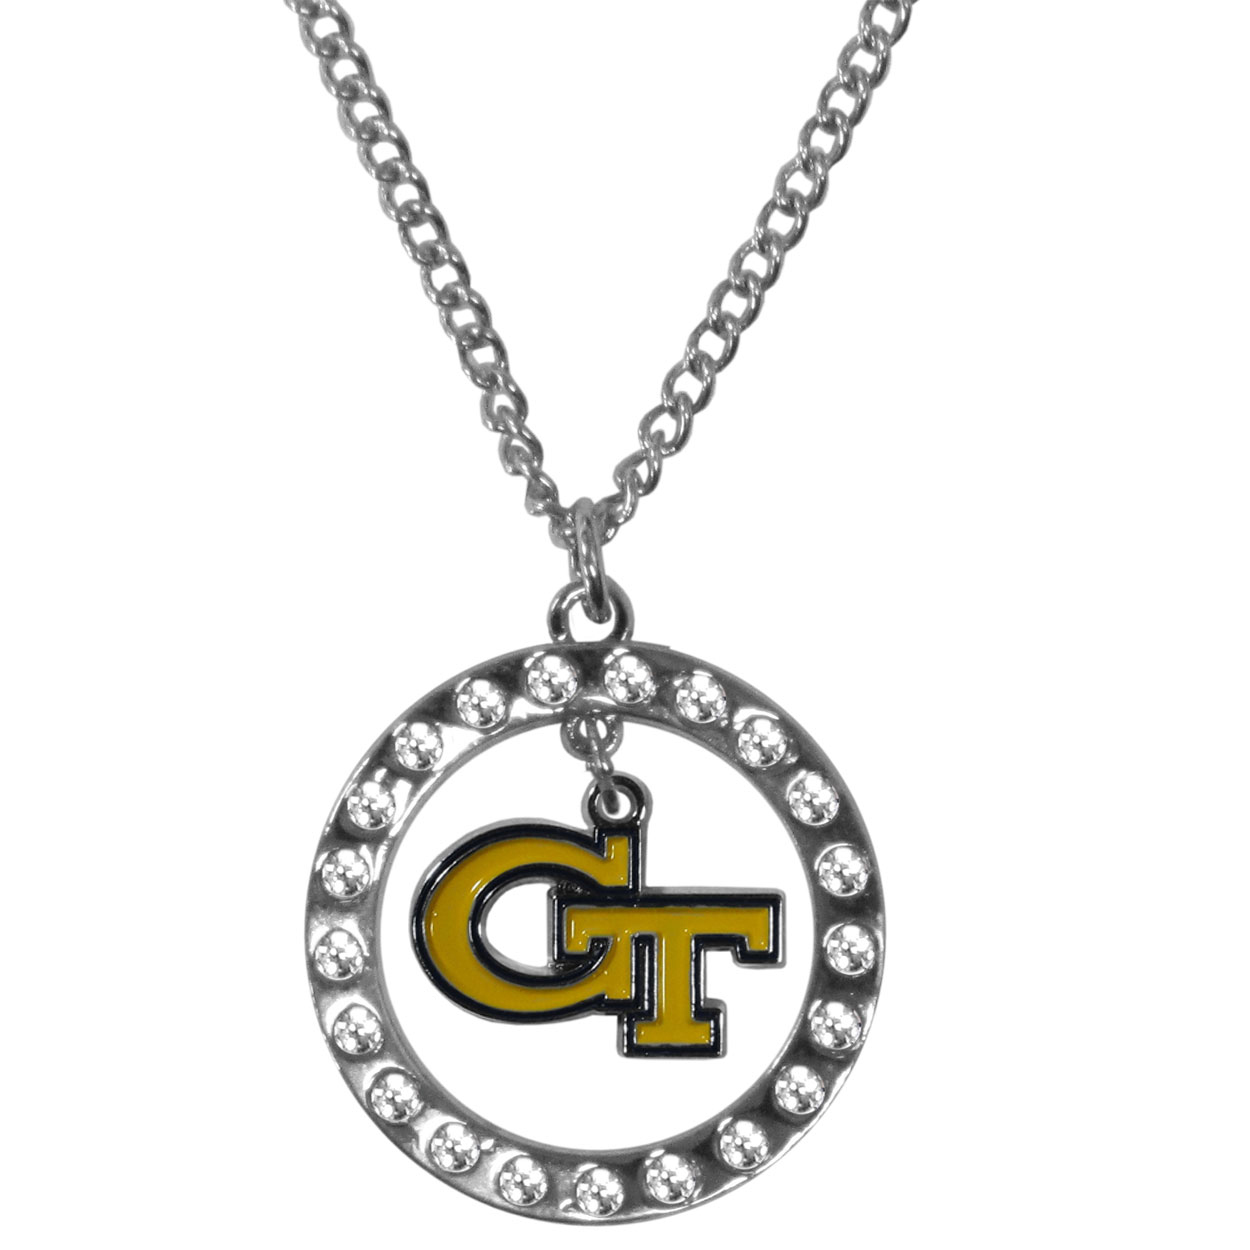 Georgia Tech Yellow Jackets Rhinestone Hoop Necklaces - Our Georgia Tech Yellow Jackets rhinestone hoop necklace comes on an 18 inch chain and features a hoop covered in rhinestones with a high polish chrome finish and a cast and enameled team charm dangling in the center.